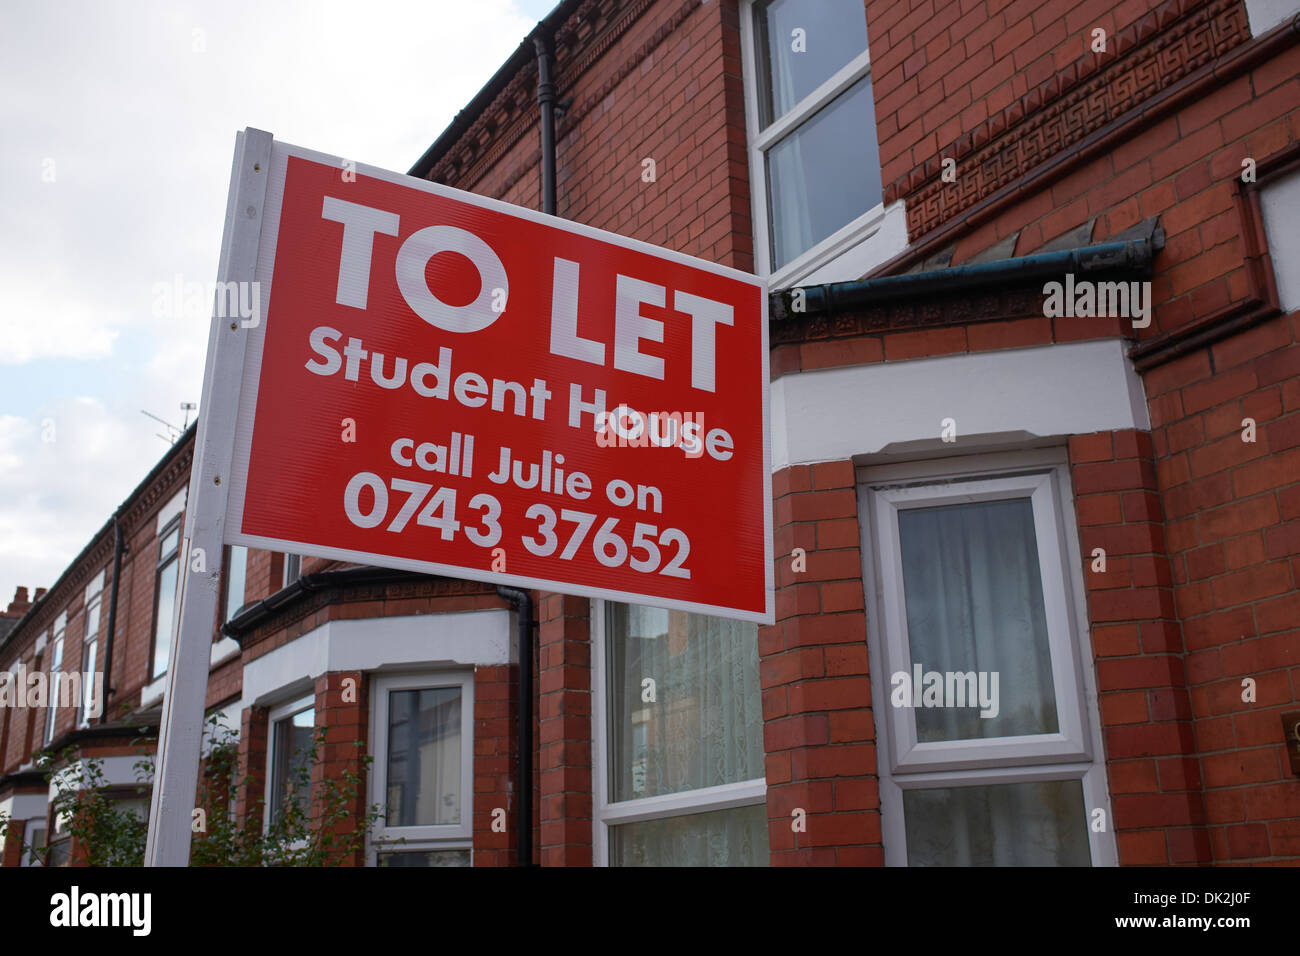 Student House To Let sign outside a terraced house - Stock Image